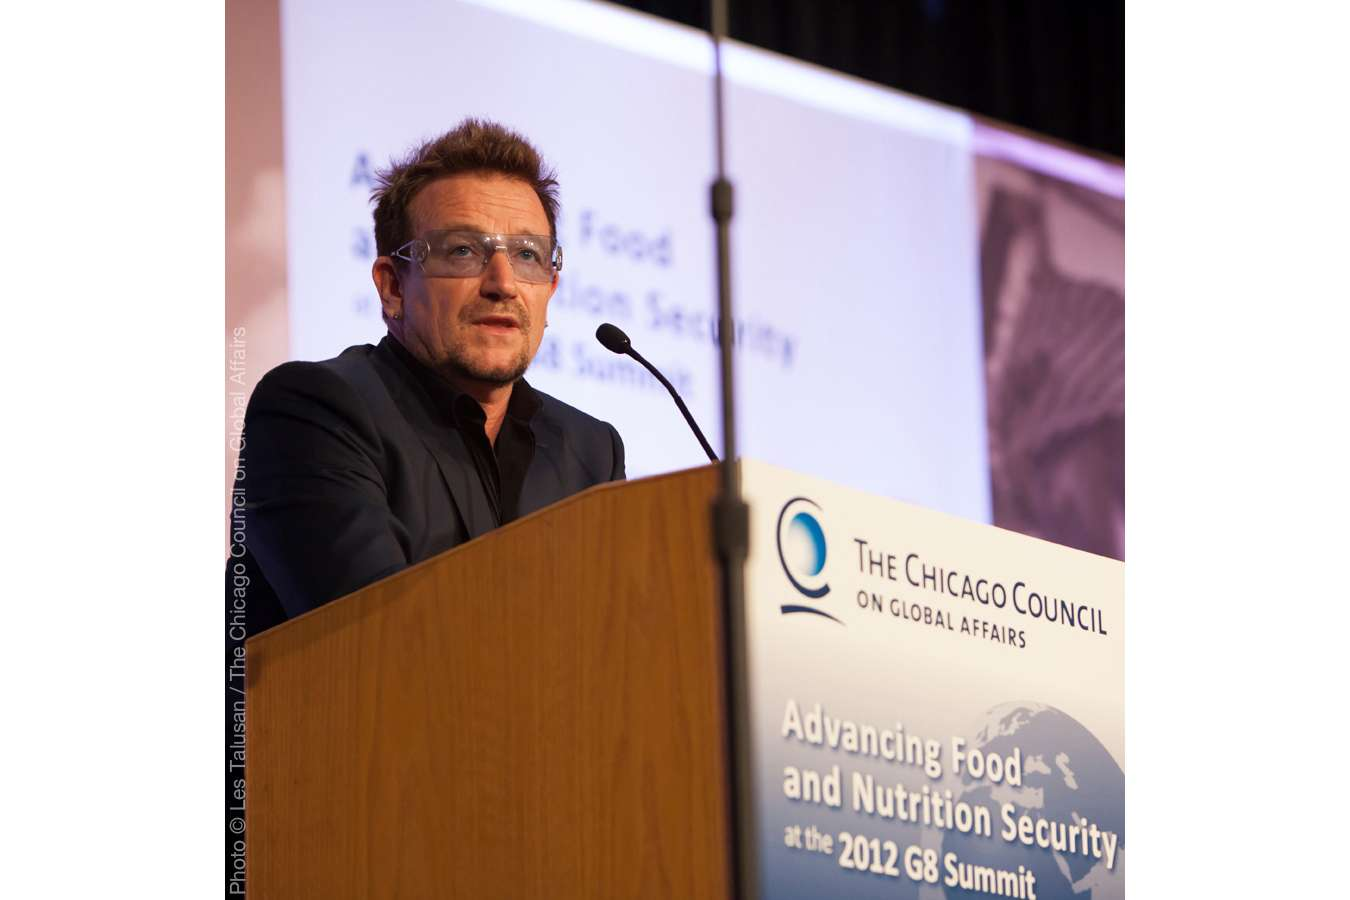 ccg8_3d_bono_square : Bono, Rockstar and Cofounder of ONE